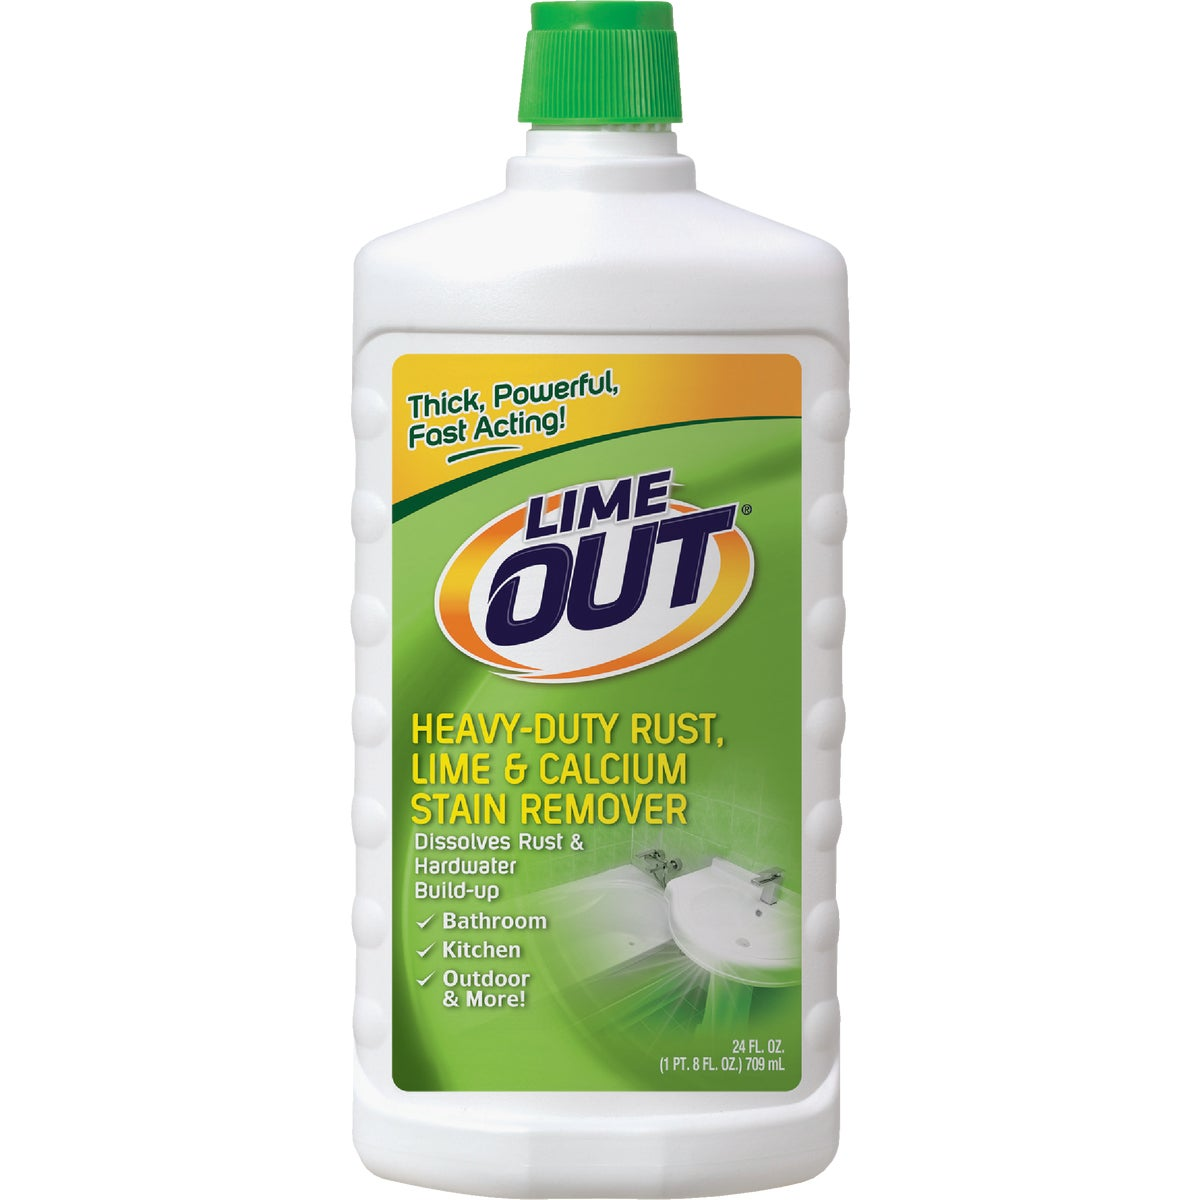 24OZ LIME OUT - AO06N by Summit Brands